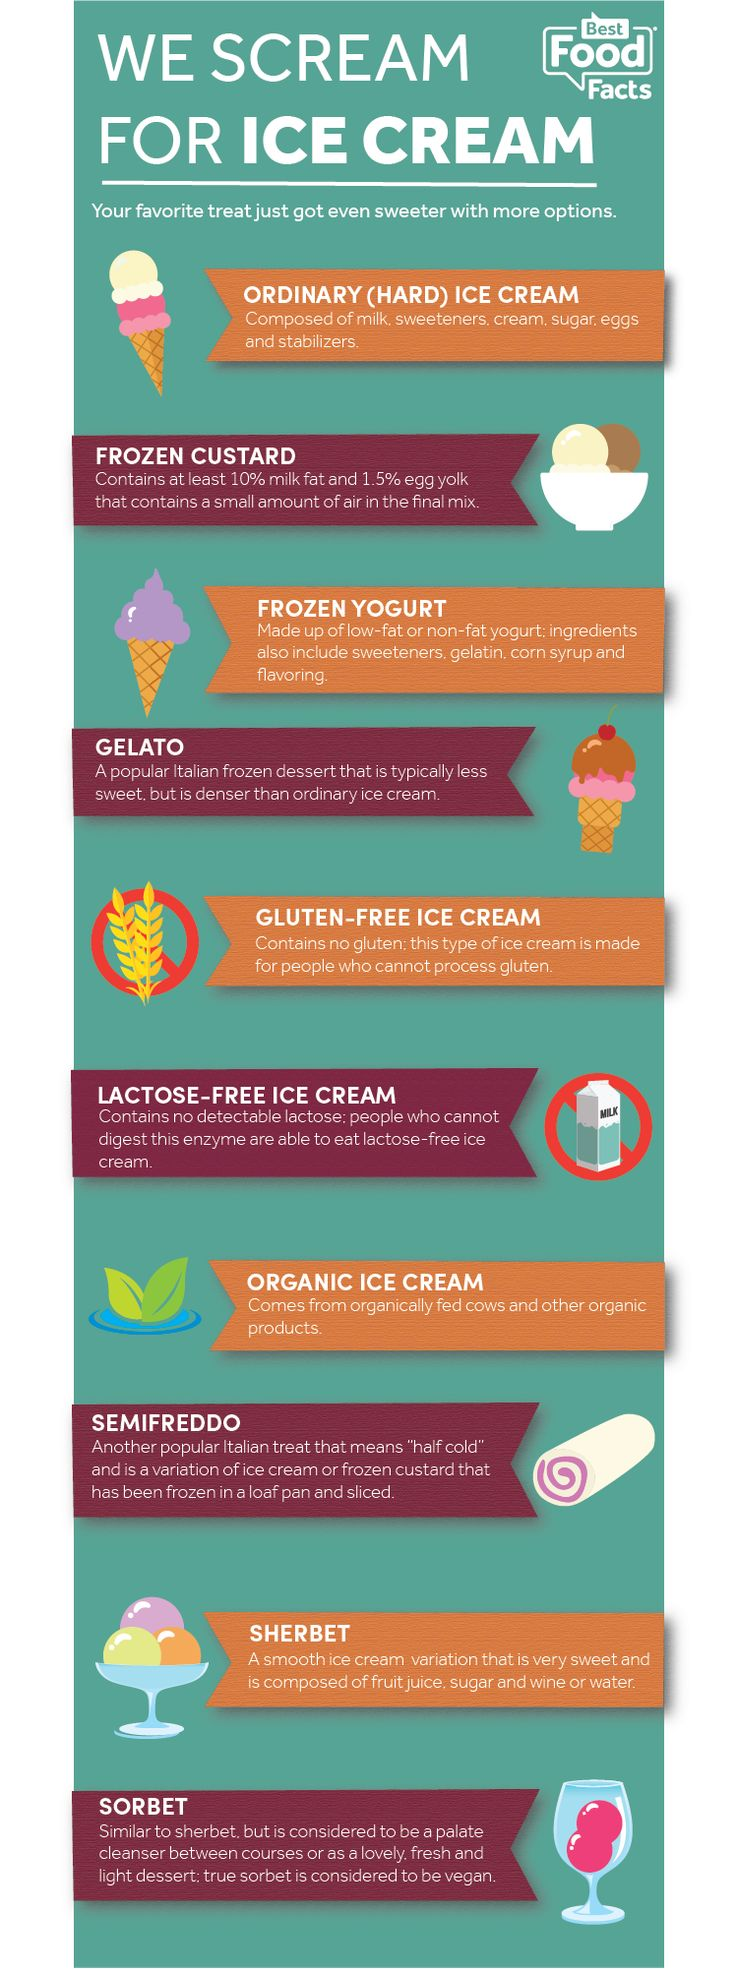 Learn all about the different types of ice cream treats that you can enjoy!